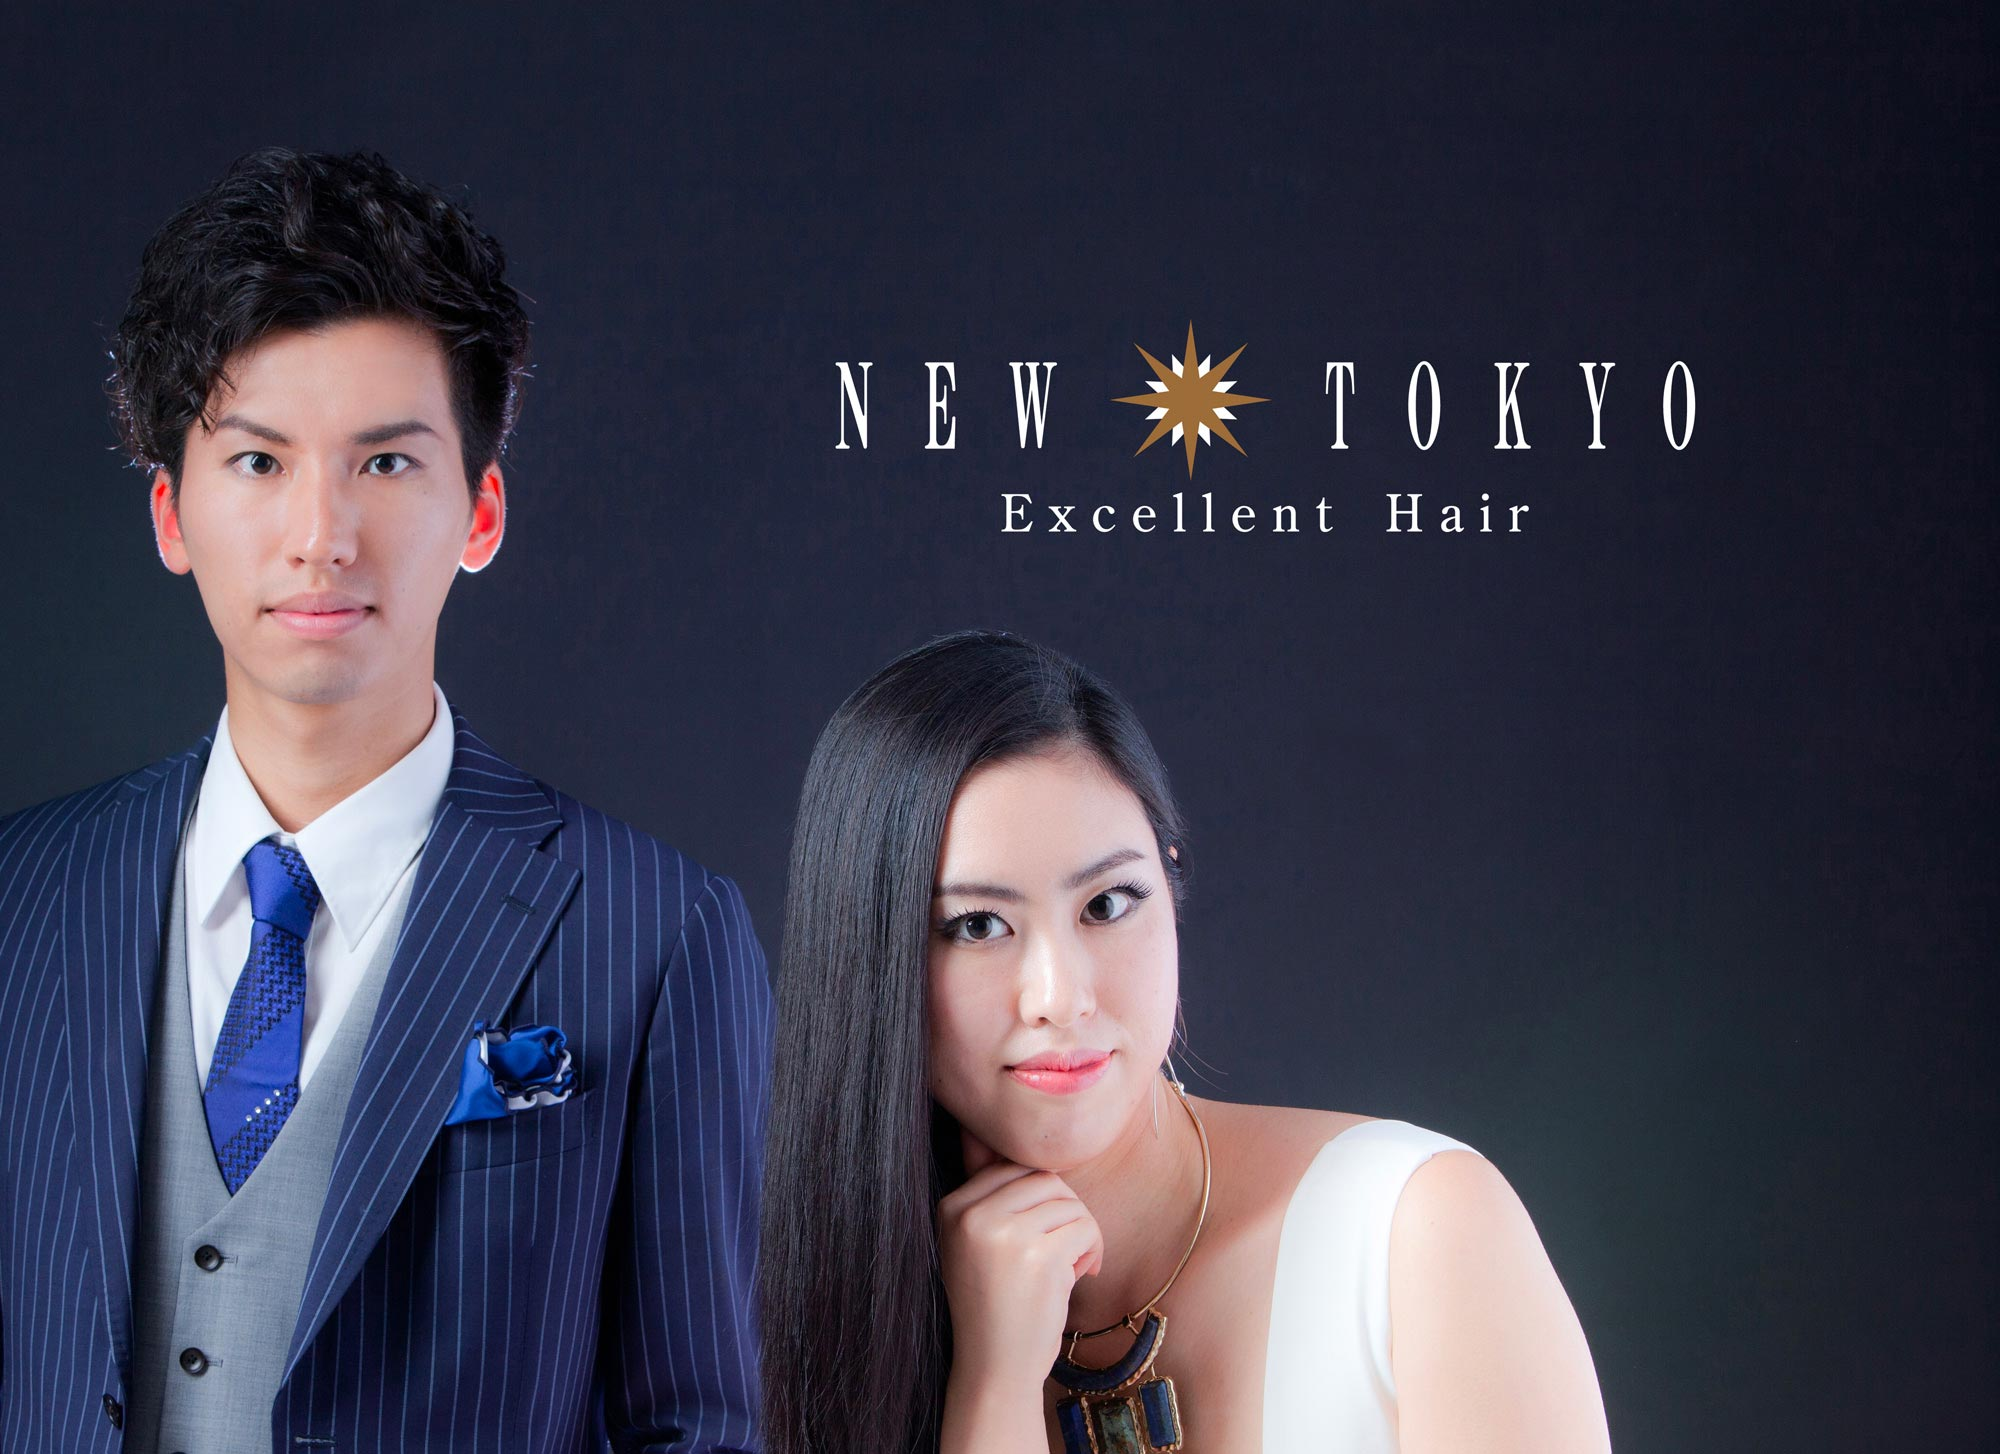 NEW TOKYO EXcellent Hair